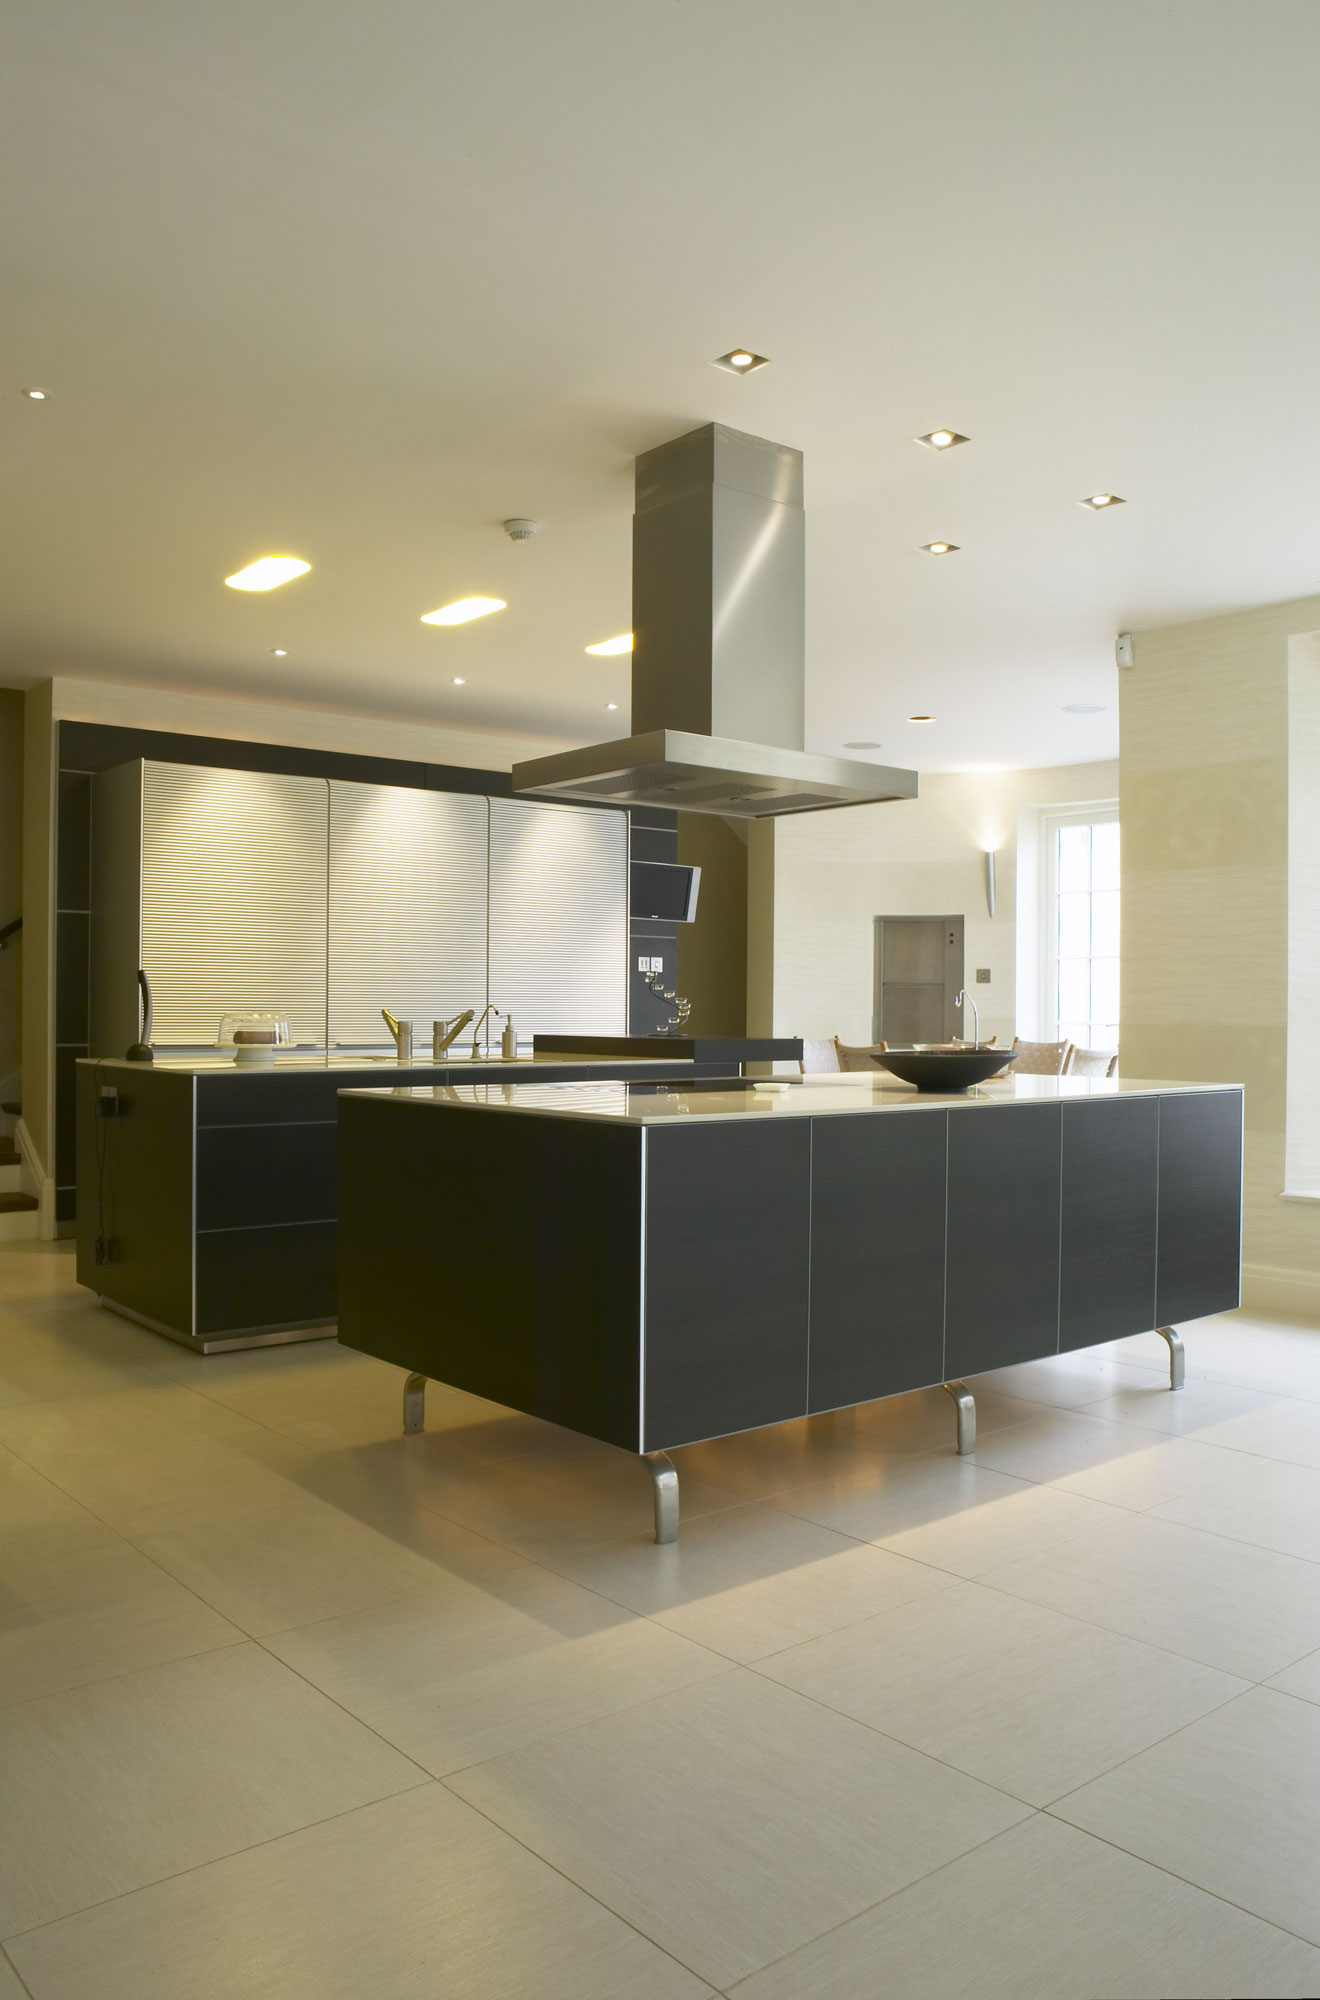 Whitestone House basement kitchen | Residential Photographer UK